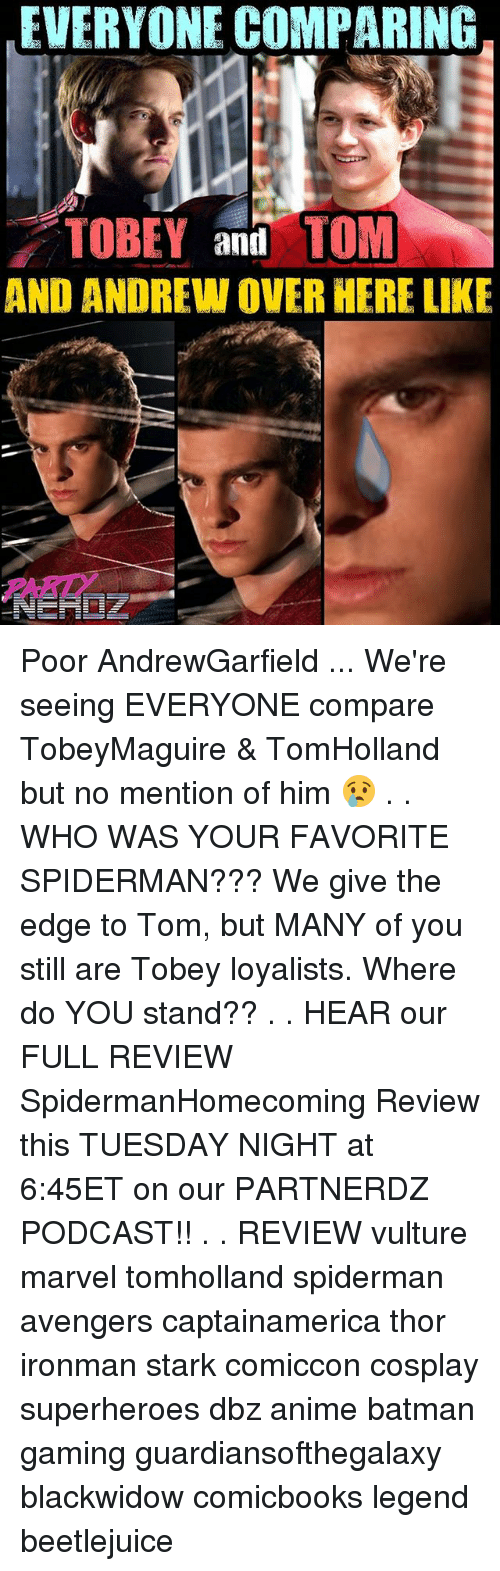 Beetlejuice: EVERYONE COMPARING  TOBEY and TOM  AND ANDREW OVER HERE LIKE  PARD Poor AndrewGarfield ... We're seeing EVERYONE compare TobeyMaguire & TomHolland but no mention of him 😢 . . WHO WAS YOUR FAVORITE SPIDERMAN??? We give the edge to Tom, but MANY of you still are Tobey loyalists. Where do YOU stand?? . . HEAR our FULL REVIEW SpidermanHomecoming Review this TUESDAY NIGHT at 6:45ET on our PARTNERDZ PODCAST!! . . REVIEW vulture marvel tomholland spiderman avengers captainamerica thor ironman stark comiccon cosplay superheroes dbz anime batman gaming guardiansofthegalaxy blackwidow comicbooks legend beetlejuice